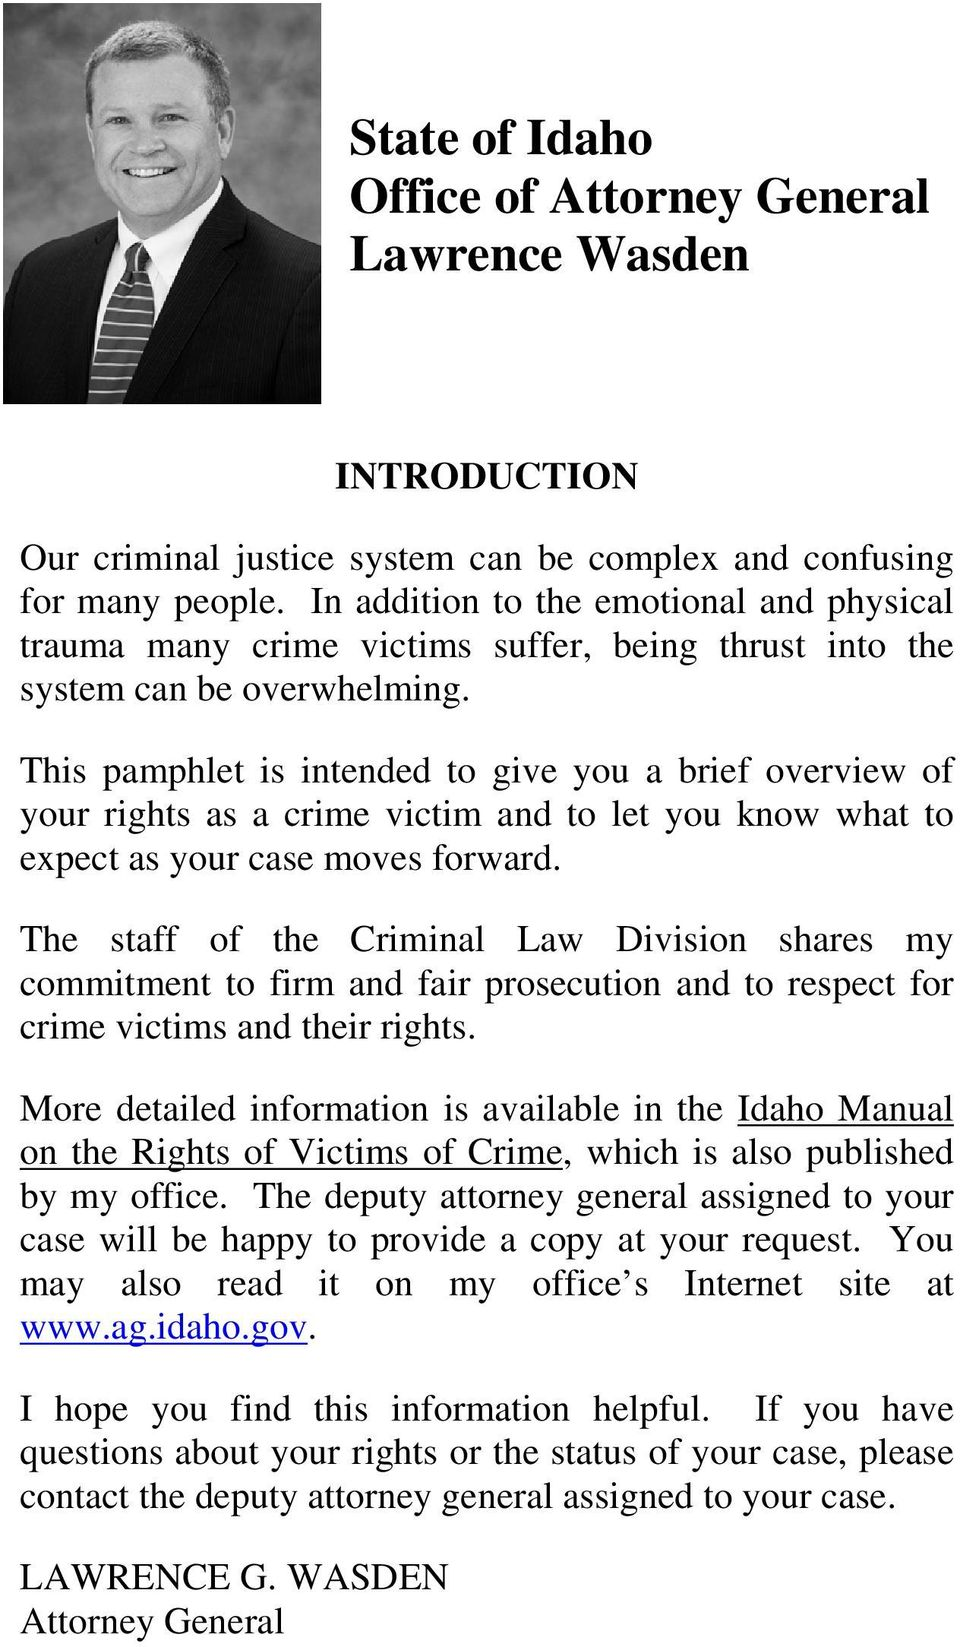 This pamphlet is intended to give you a brief overview of your rights as a crime victim and to let you know what to expect as your case moves forward.